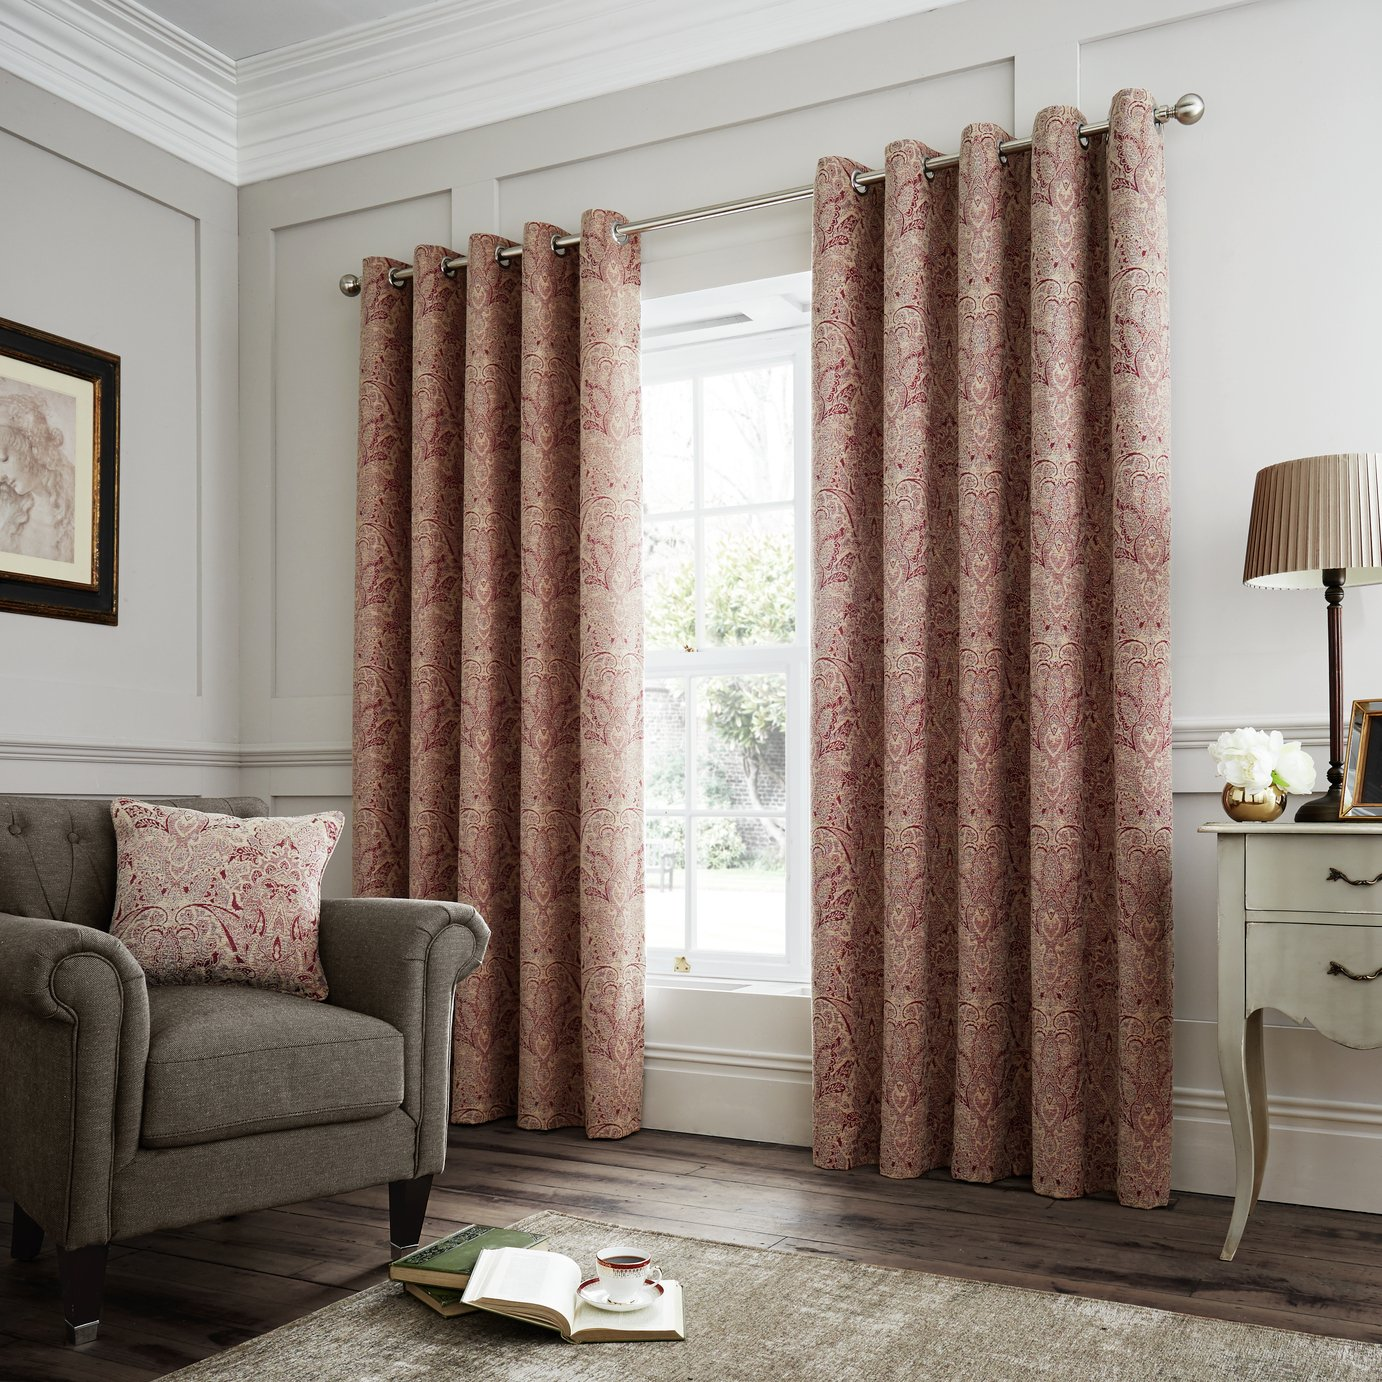 Curtina Whitcliffe Lined Eyelet Curtains - 168x229cm - Multi